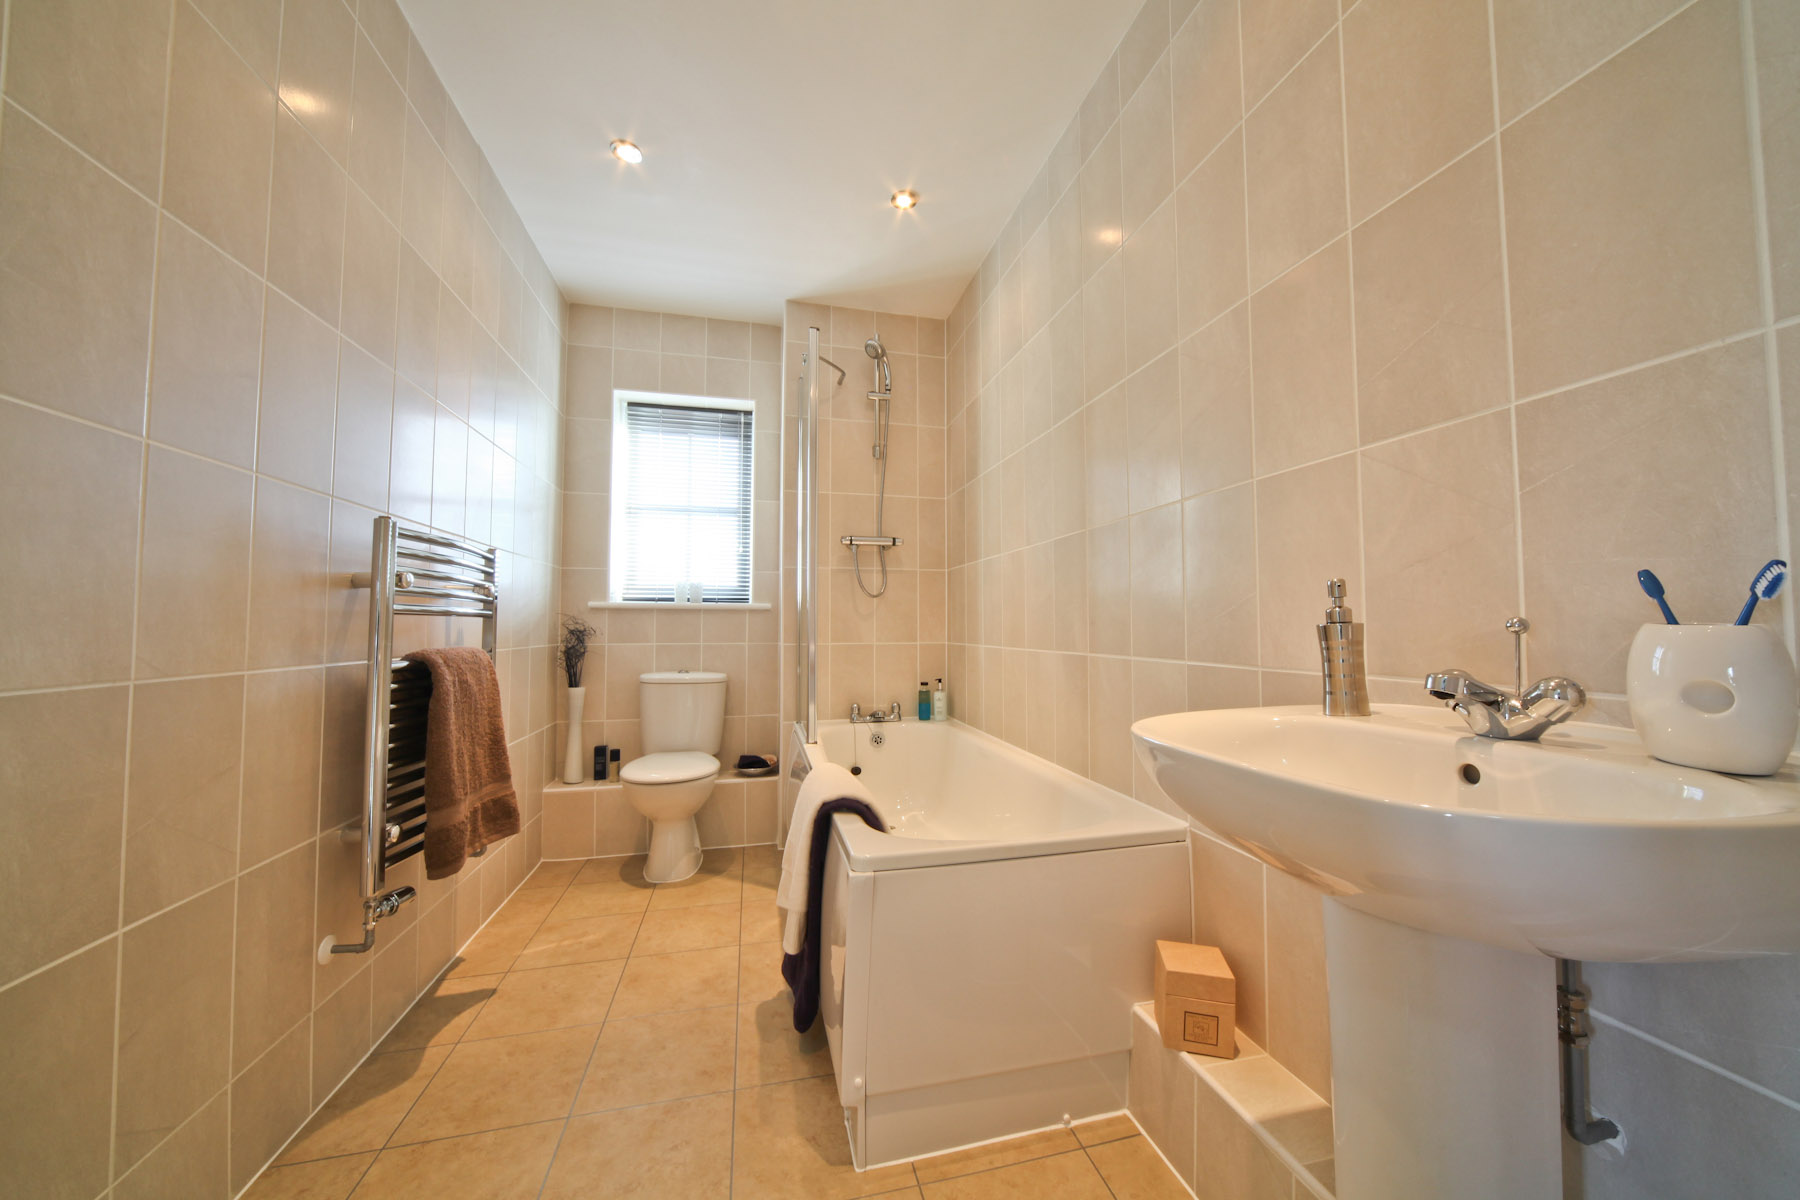 Taylor Wimpey typical family bathroom